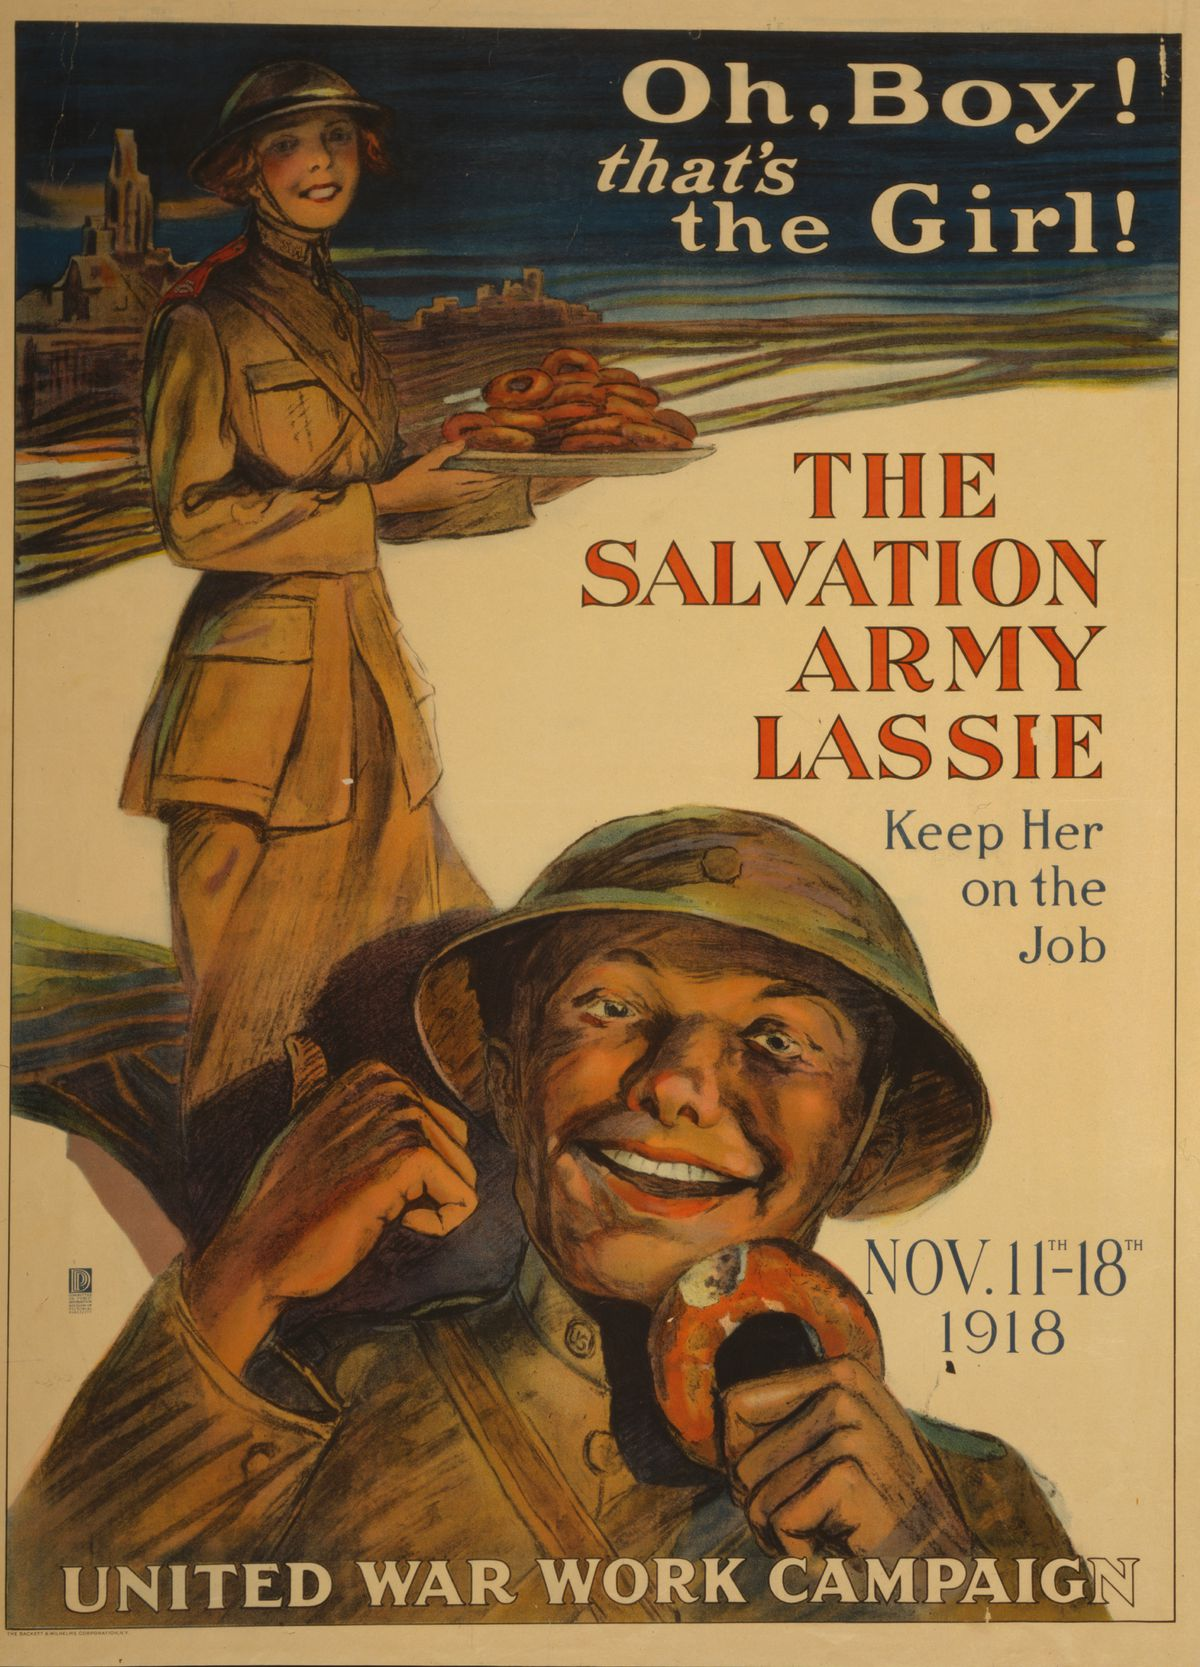 A poster from 1918. Follow you donut, you find the truth.